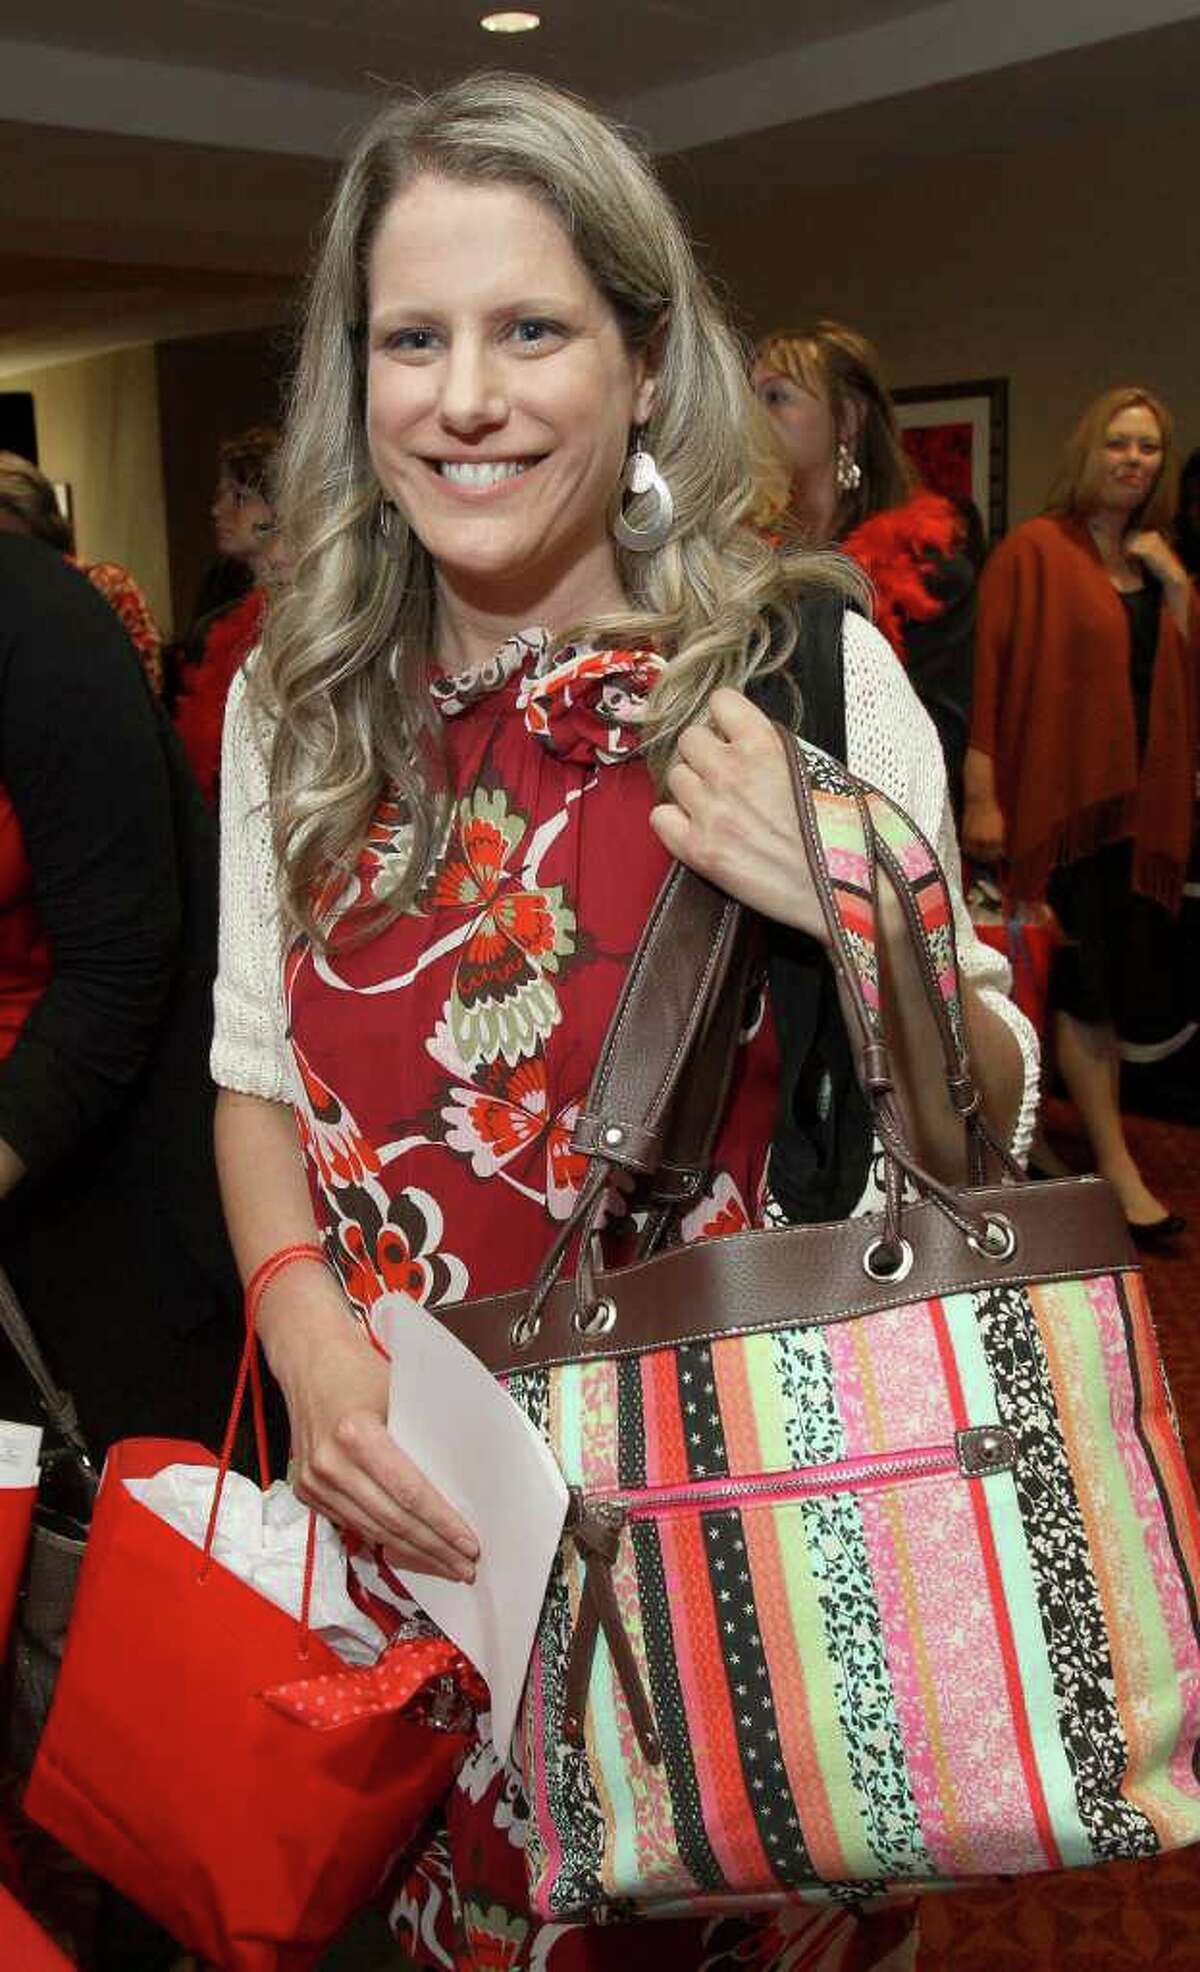 Erin Silk shows off the purse that she won from the silent auction during the 7th Annual Go Red For Women Luncheon on May 18, 2011, to benefit the American Heart Association. (Photo by Joe Putrock/Special to the Times Union)